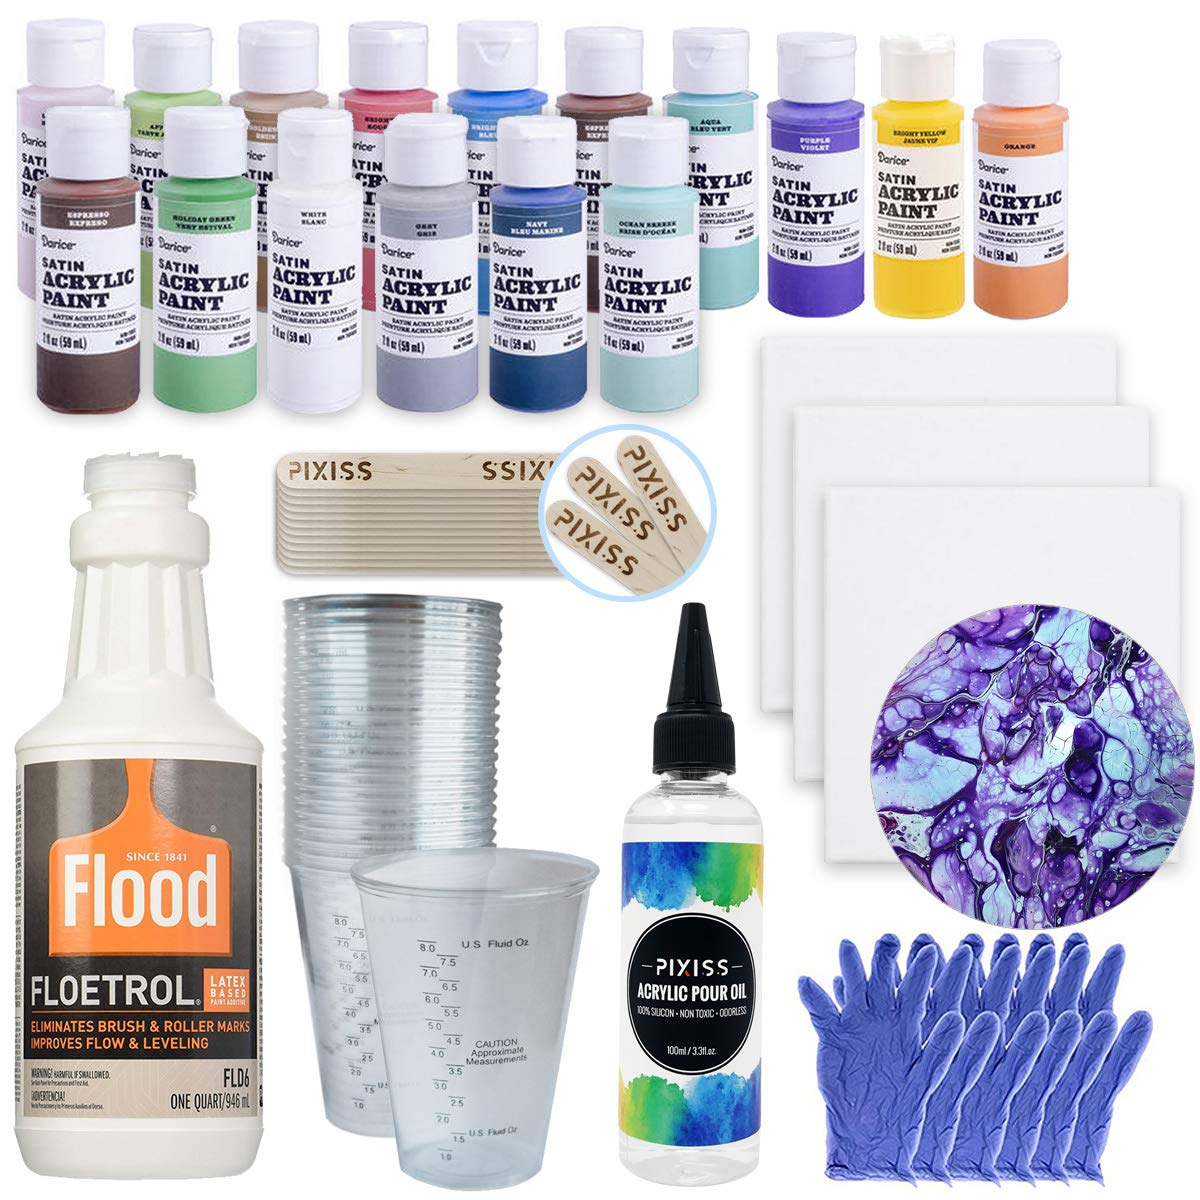 Acrylic Paint Pouring Bundle - Floetrol, Cups, 16x 2-Ounce Acrylic Paints, 3X 6-inch Canvases, Pixiss Acrylic Pouring Oil, Mixing Sticks, Gloves, Complete Kit for Paint Pouring by GrandProducts